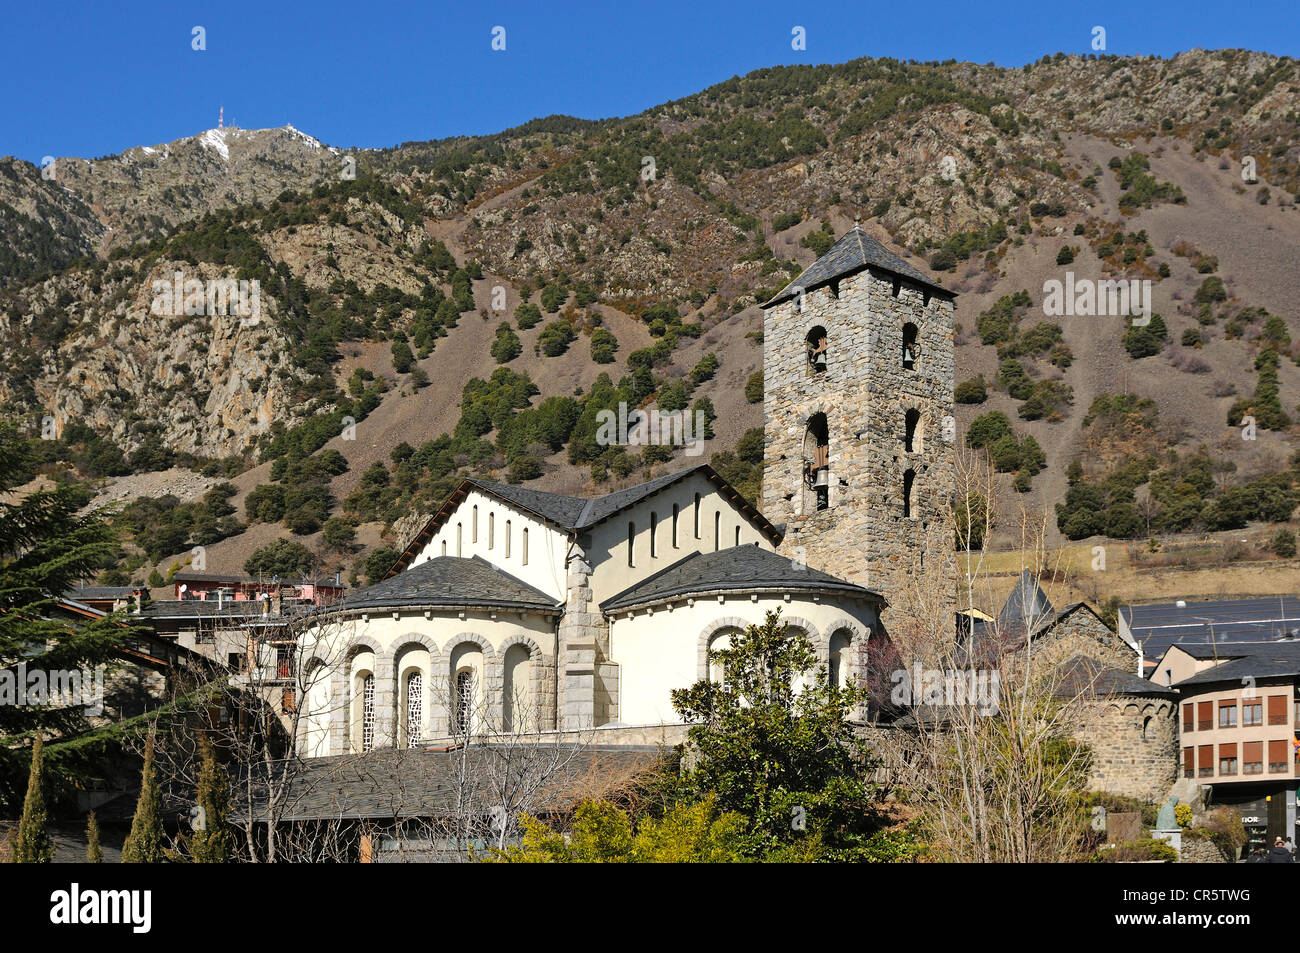 Church of Sant Esteve, Barri Antic, in front of Pic de Carroi Mountain, Andorra La Vella, Andorra, Europe - Stock Image